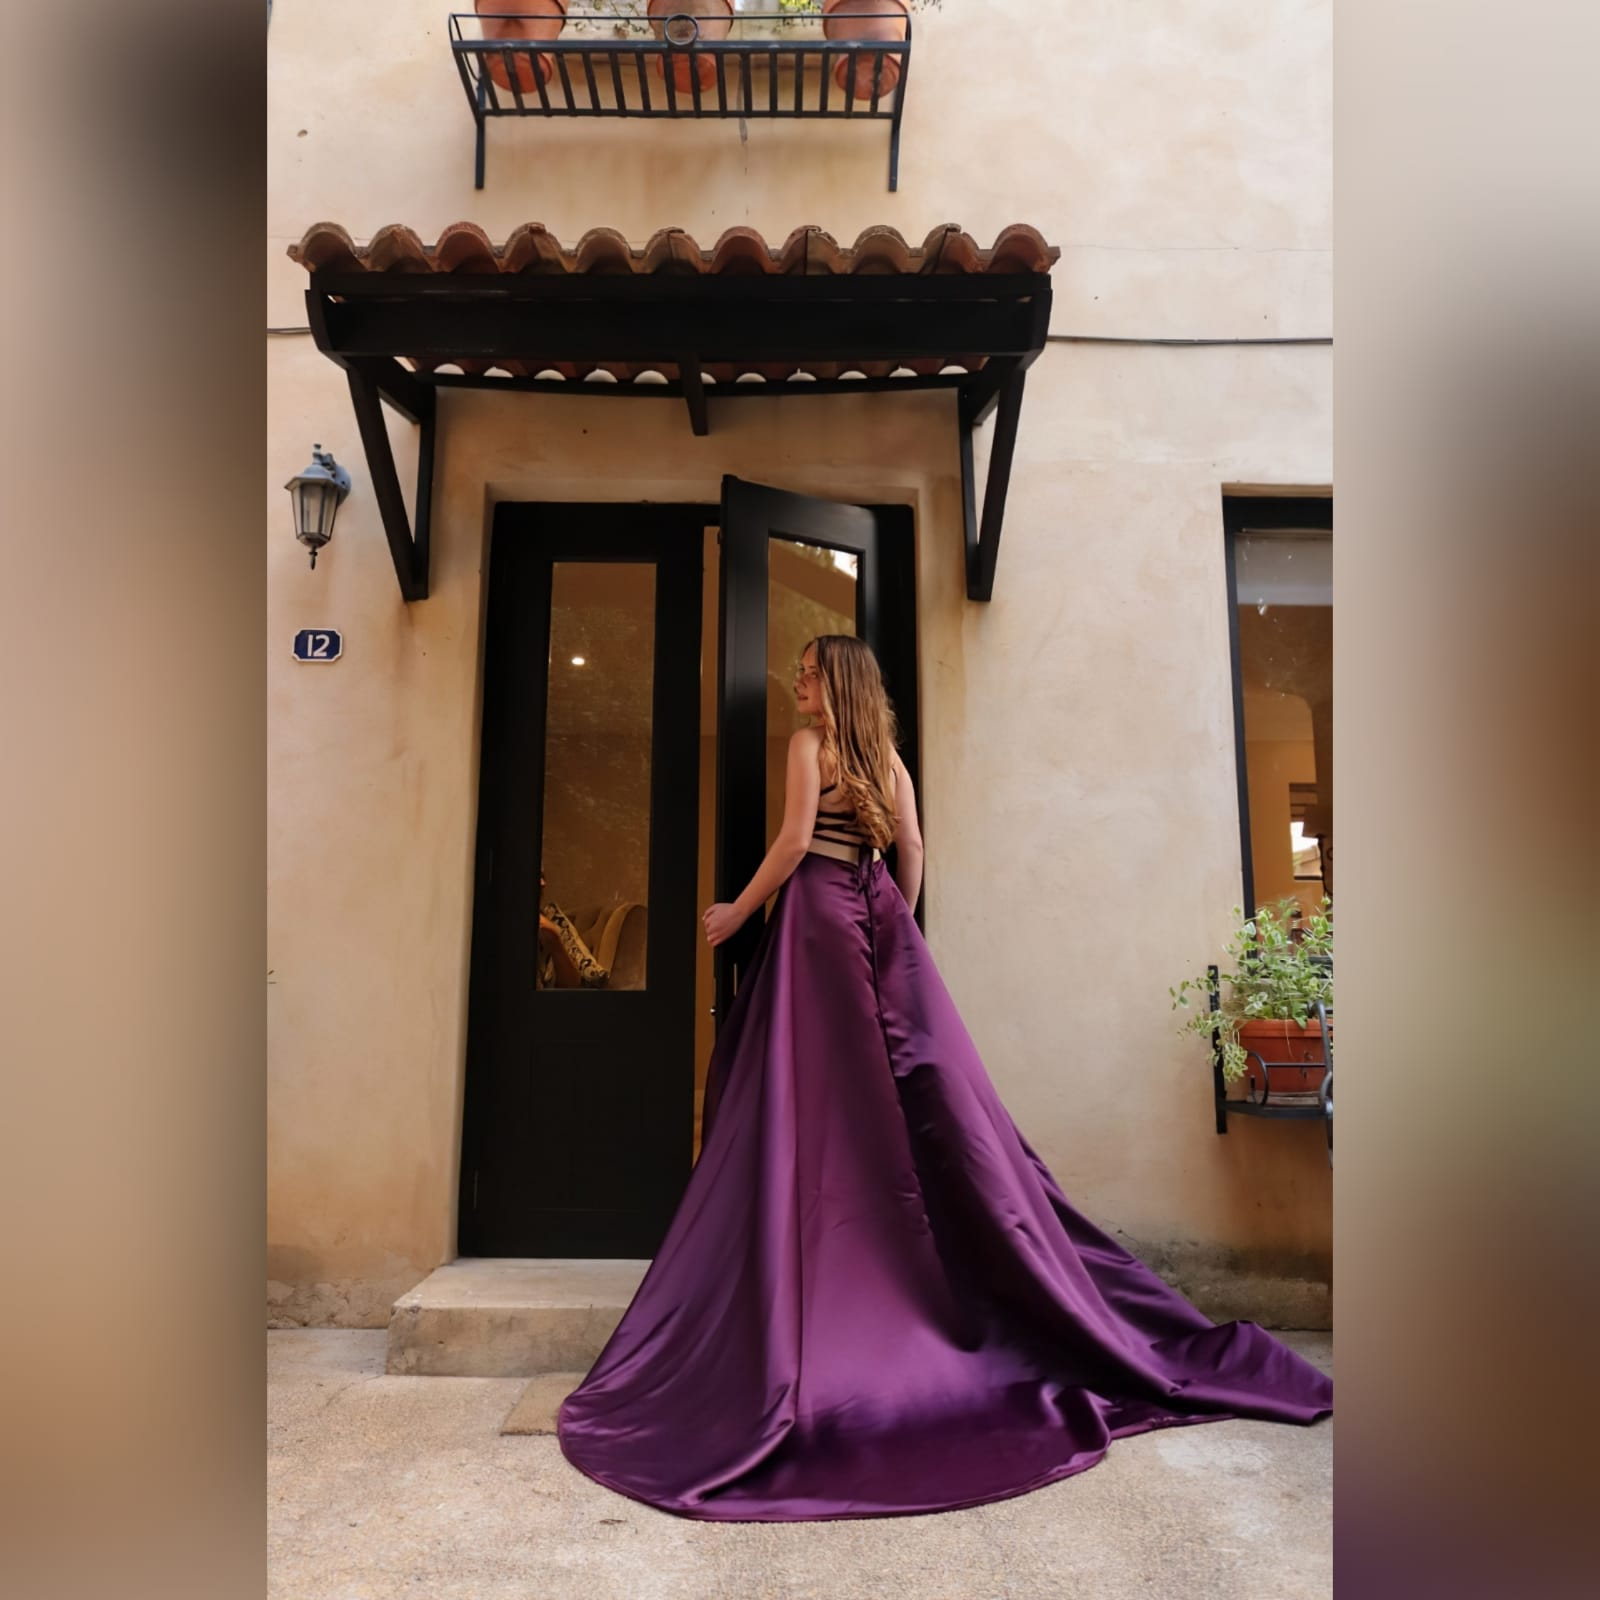 Plum long flowy prom dress with a plunging neckline 5 plum long flowy prom dress with a plunging neckline and a lace up open back with a slit and train.